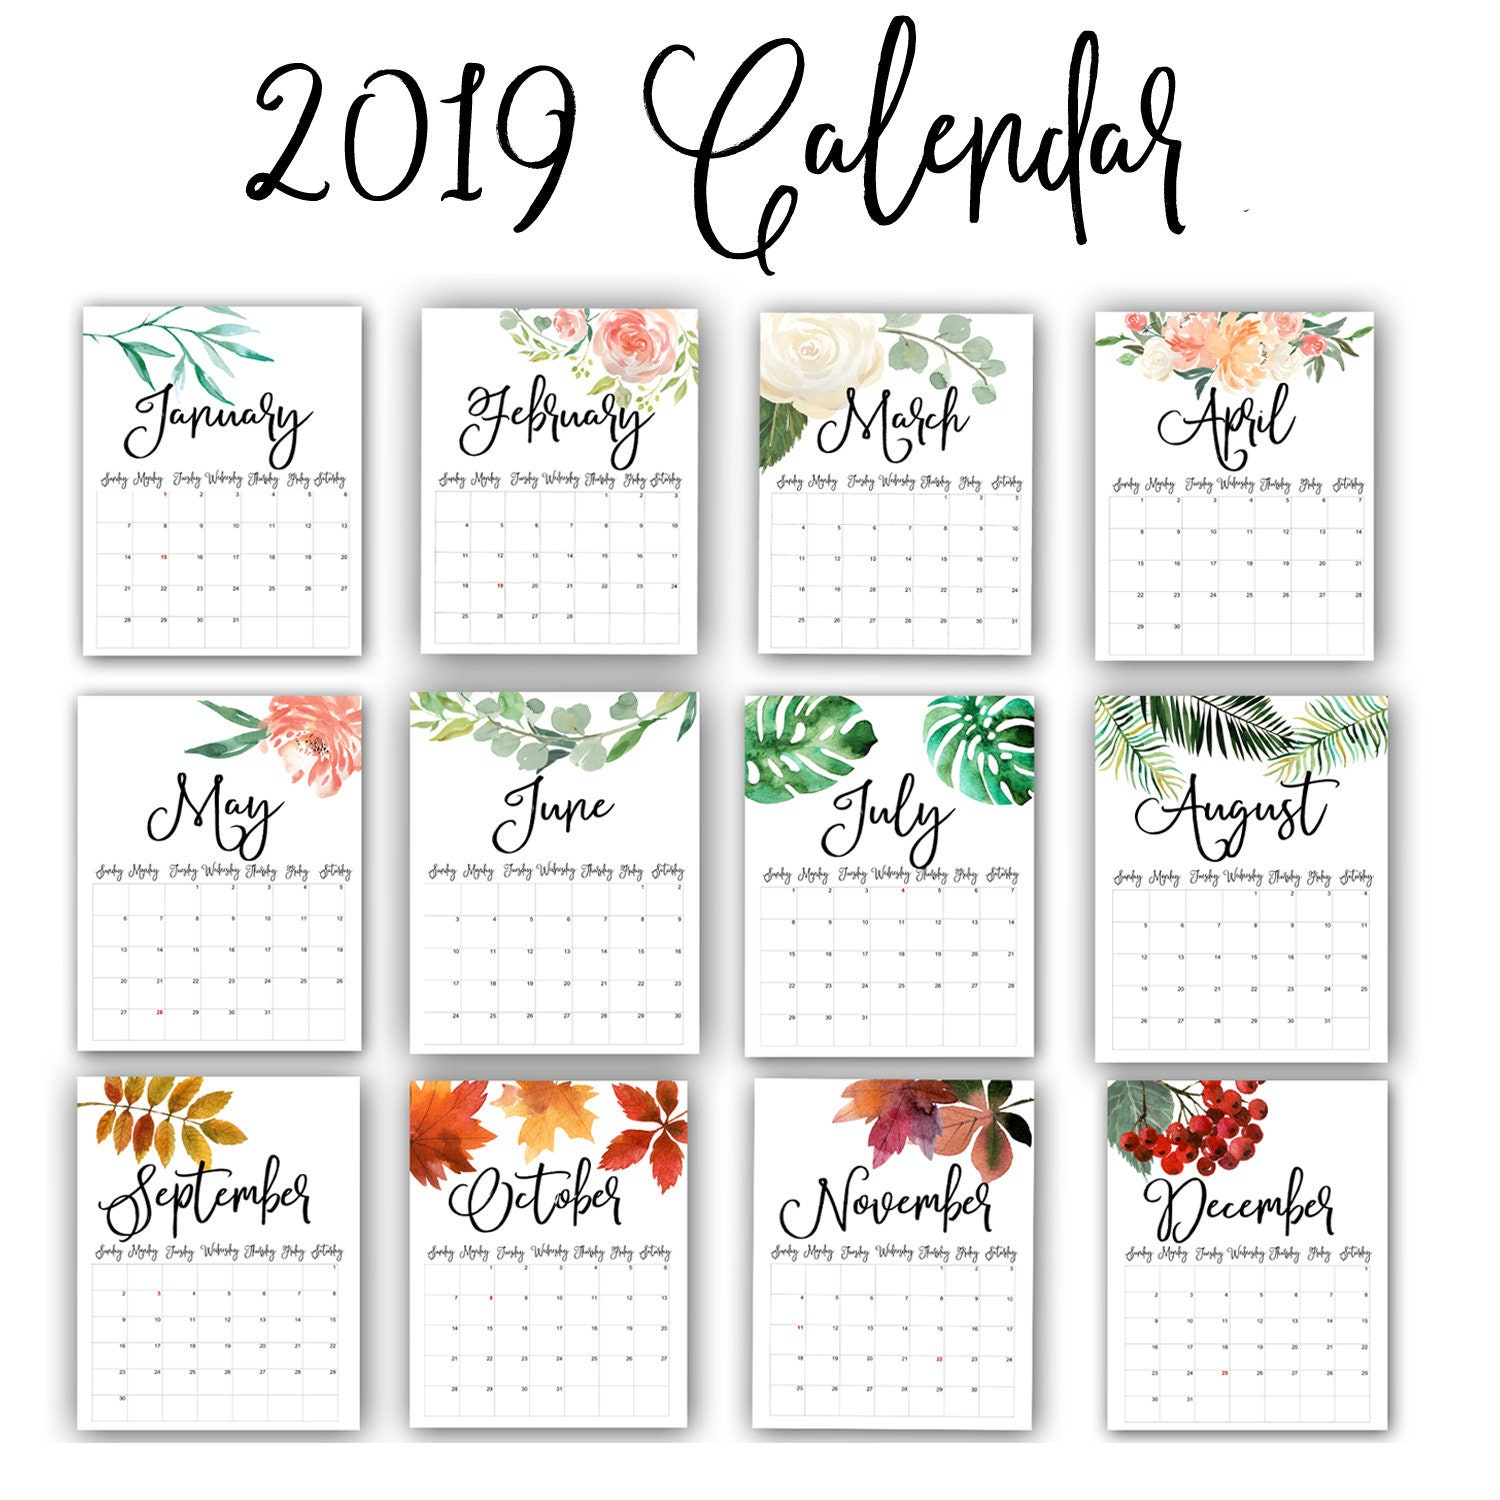 2019 2020 Floral Desk Calendar: 2019 Calendar Watercolor Flowers Calendar 2019 Monthly